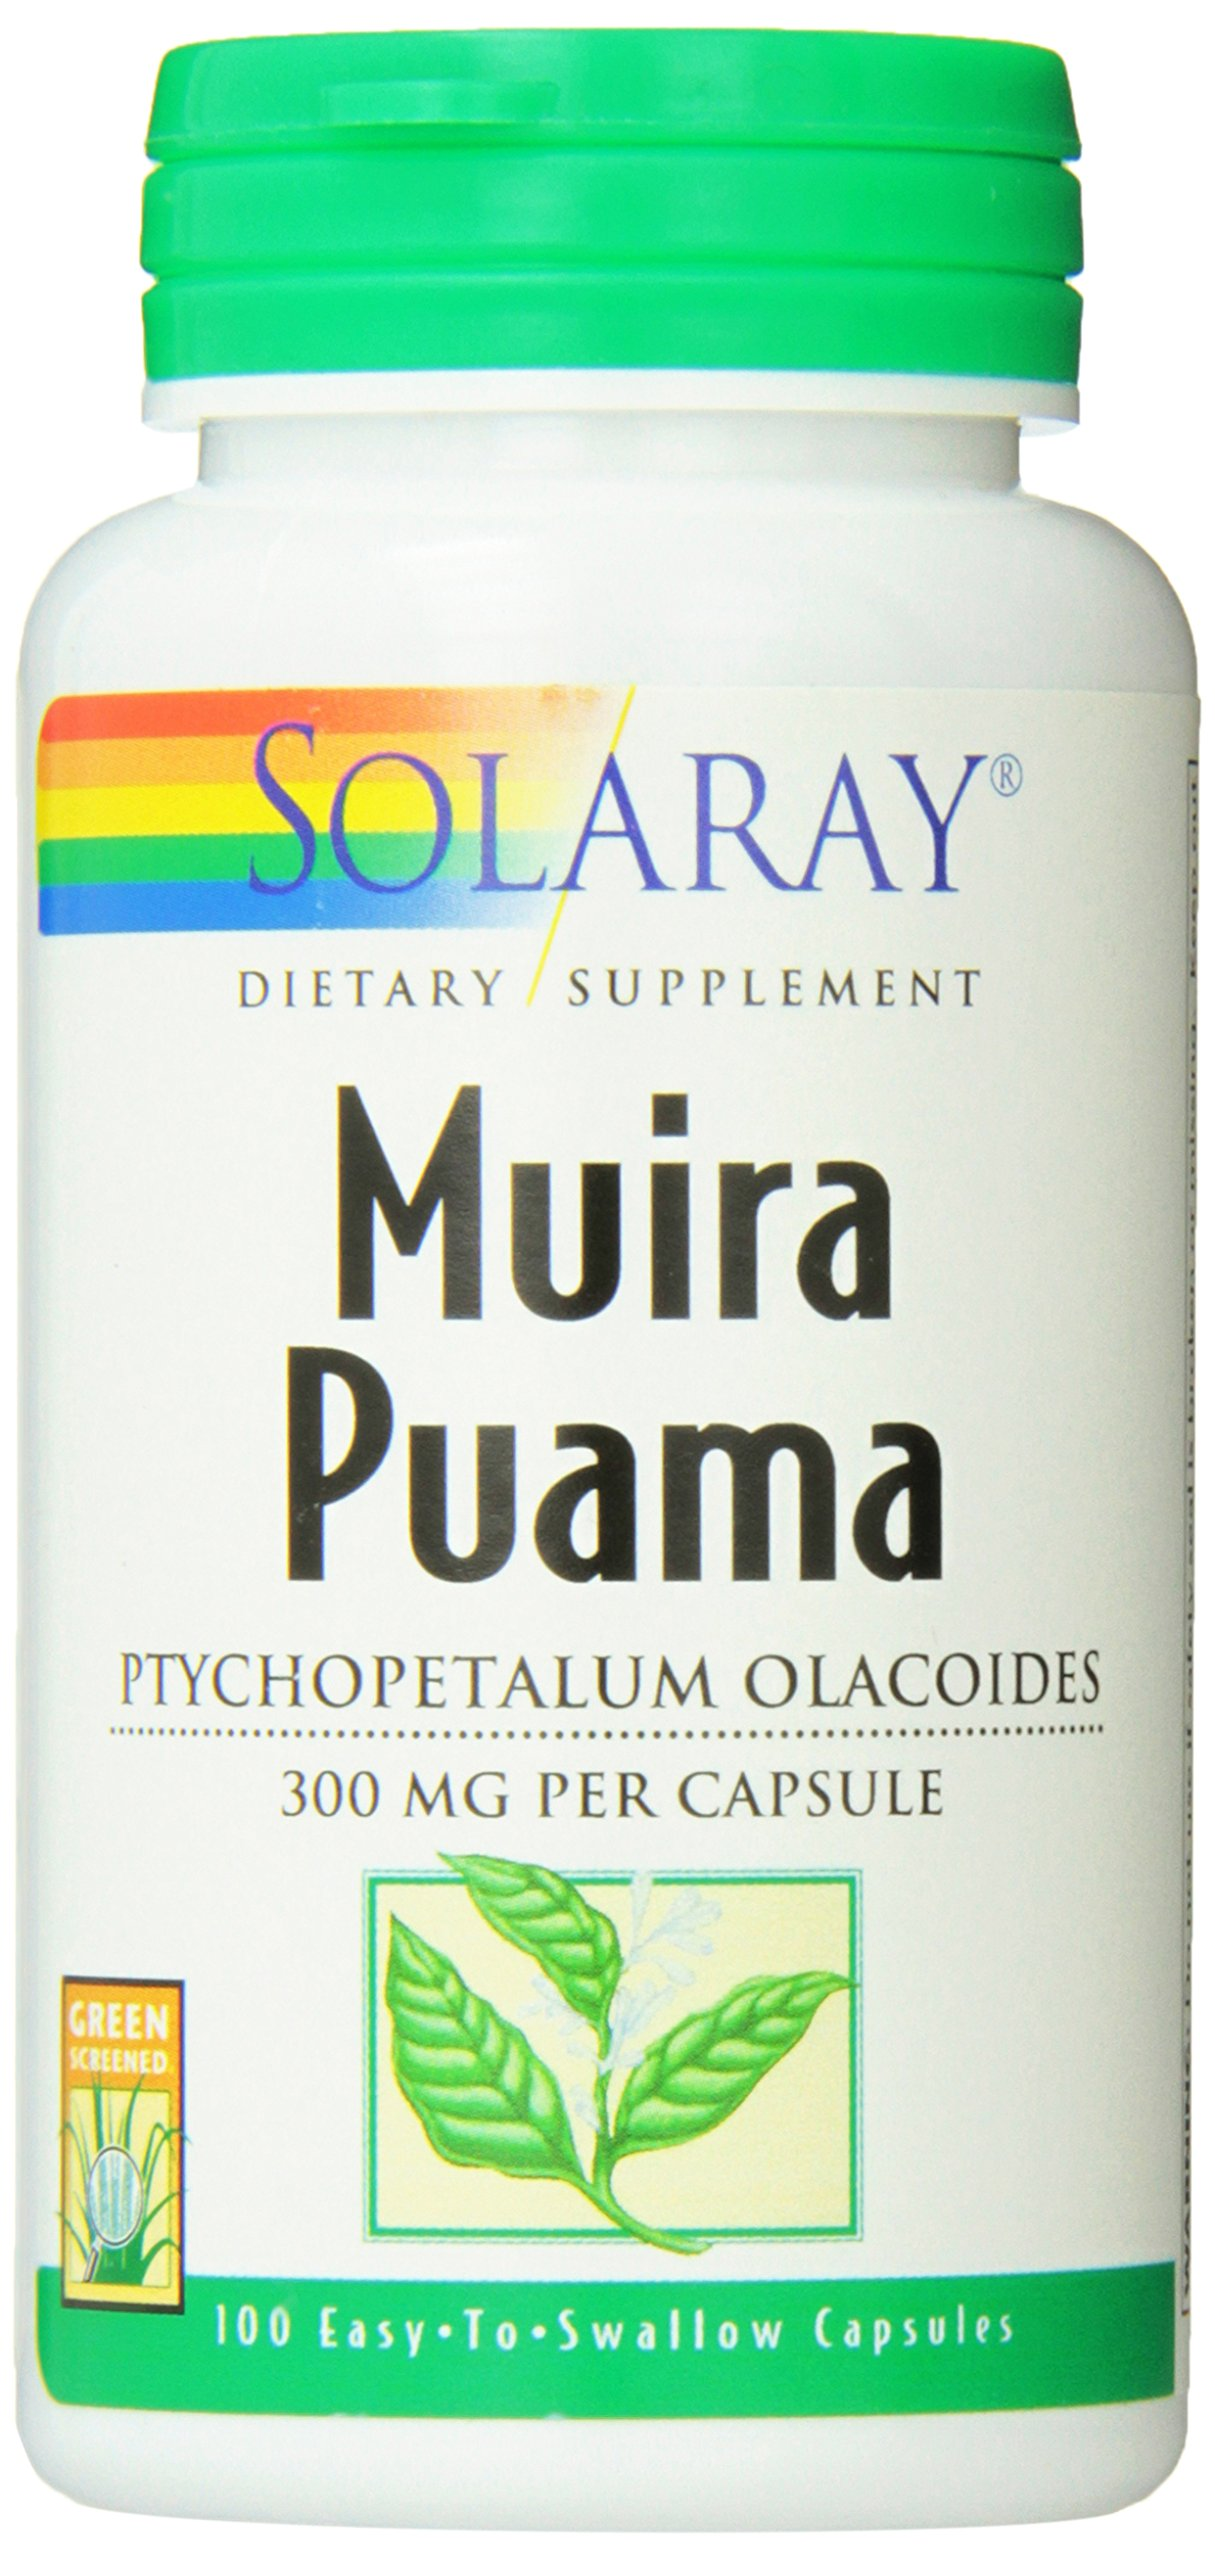 Solaray Muira Puama Root, 300 mg, 100 Count by Solaray (Image #1)